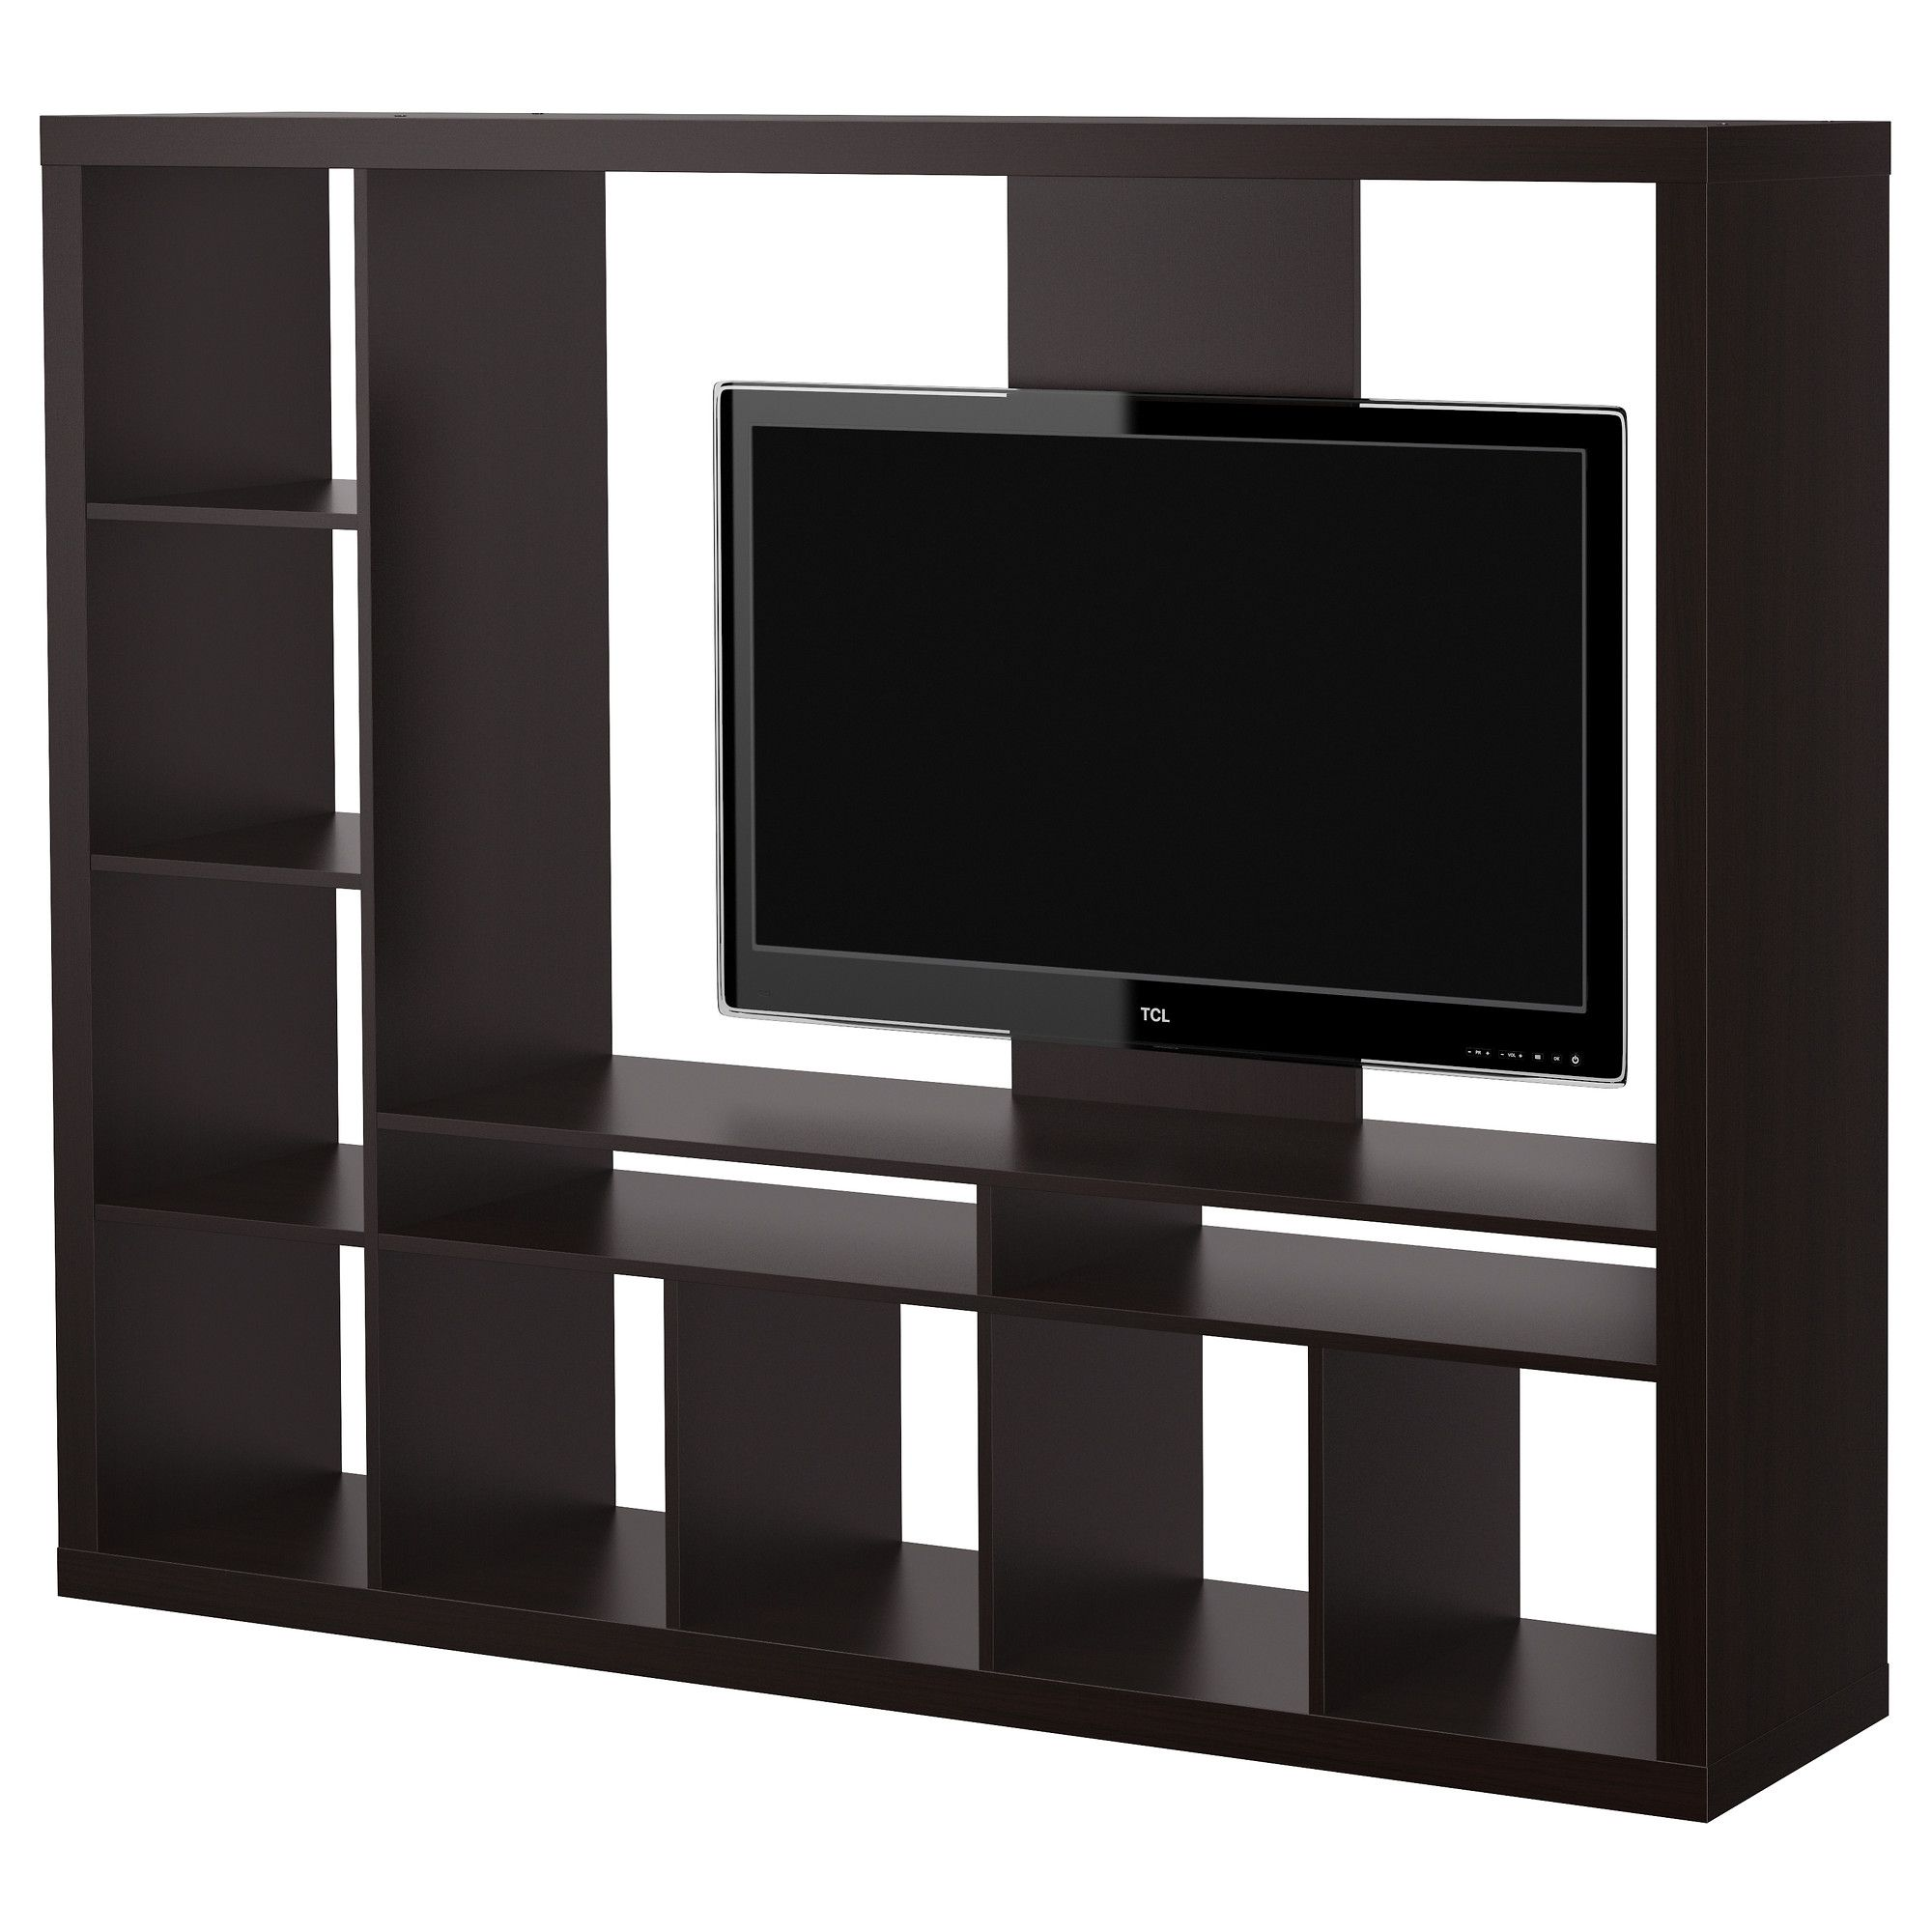 pax wardrobe with 2 doors black brown bergsbo white 100x60x236 cm a tv ikea room divider and. Black Bedroom Furniture Sets. Home Design Ideas